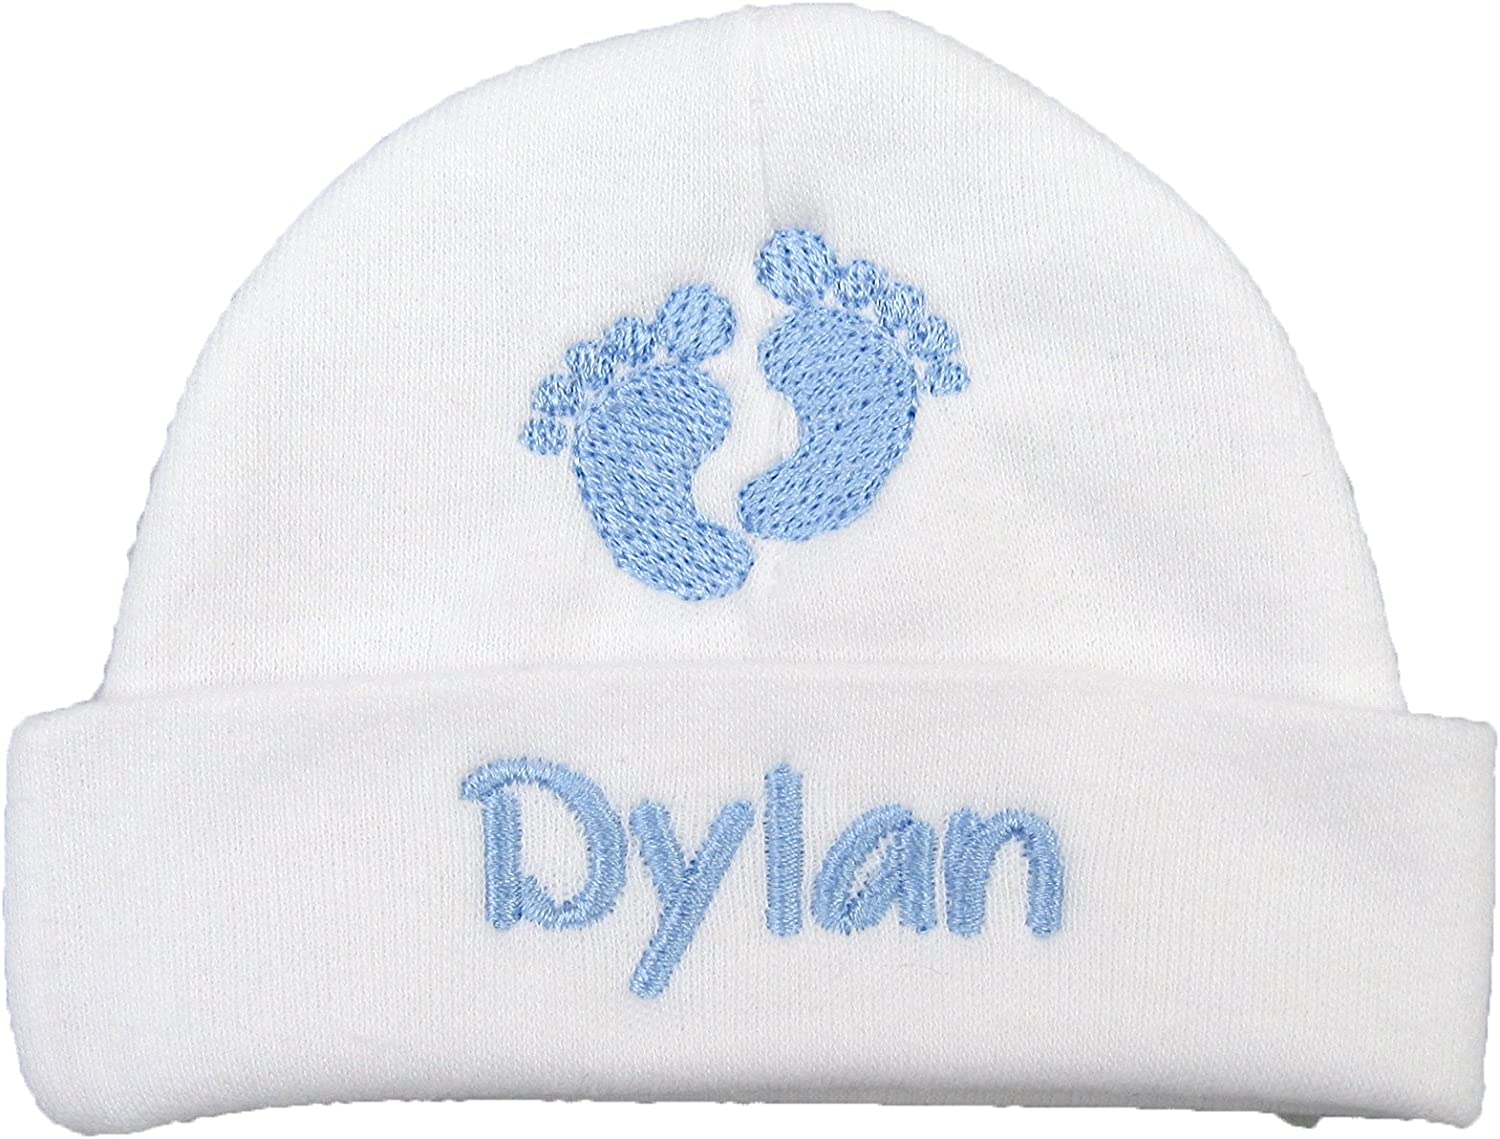 Ava's free shipping Miracles Personalized Baby store boy hat Embroidered Footpr with